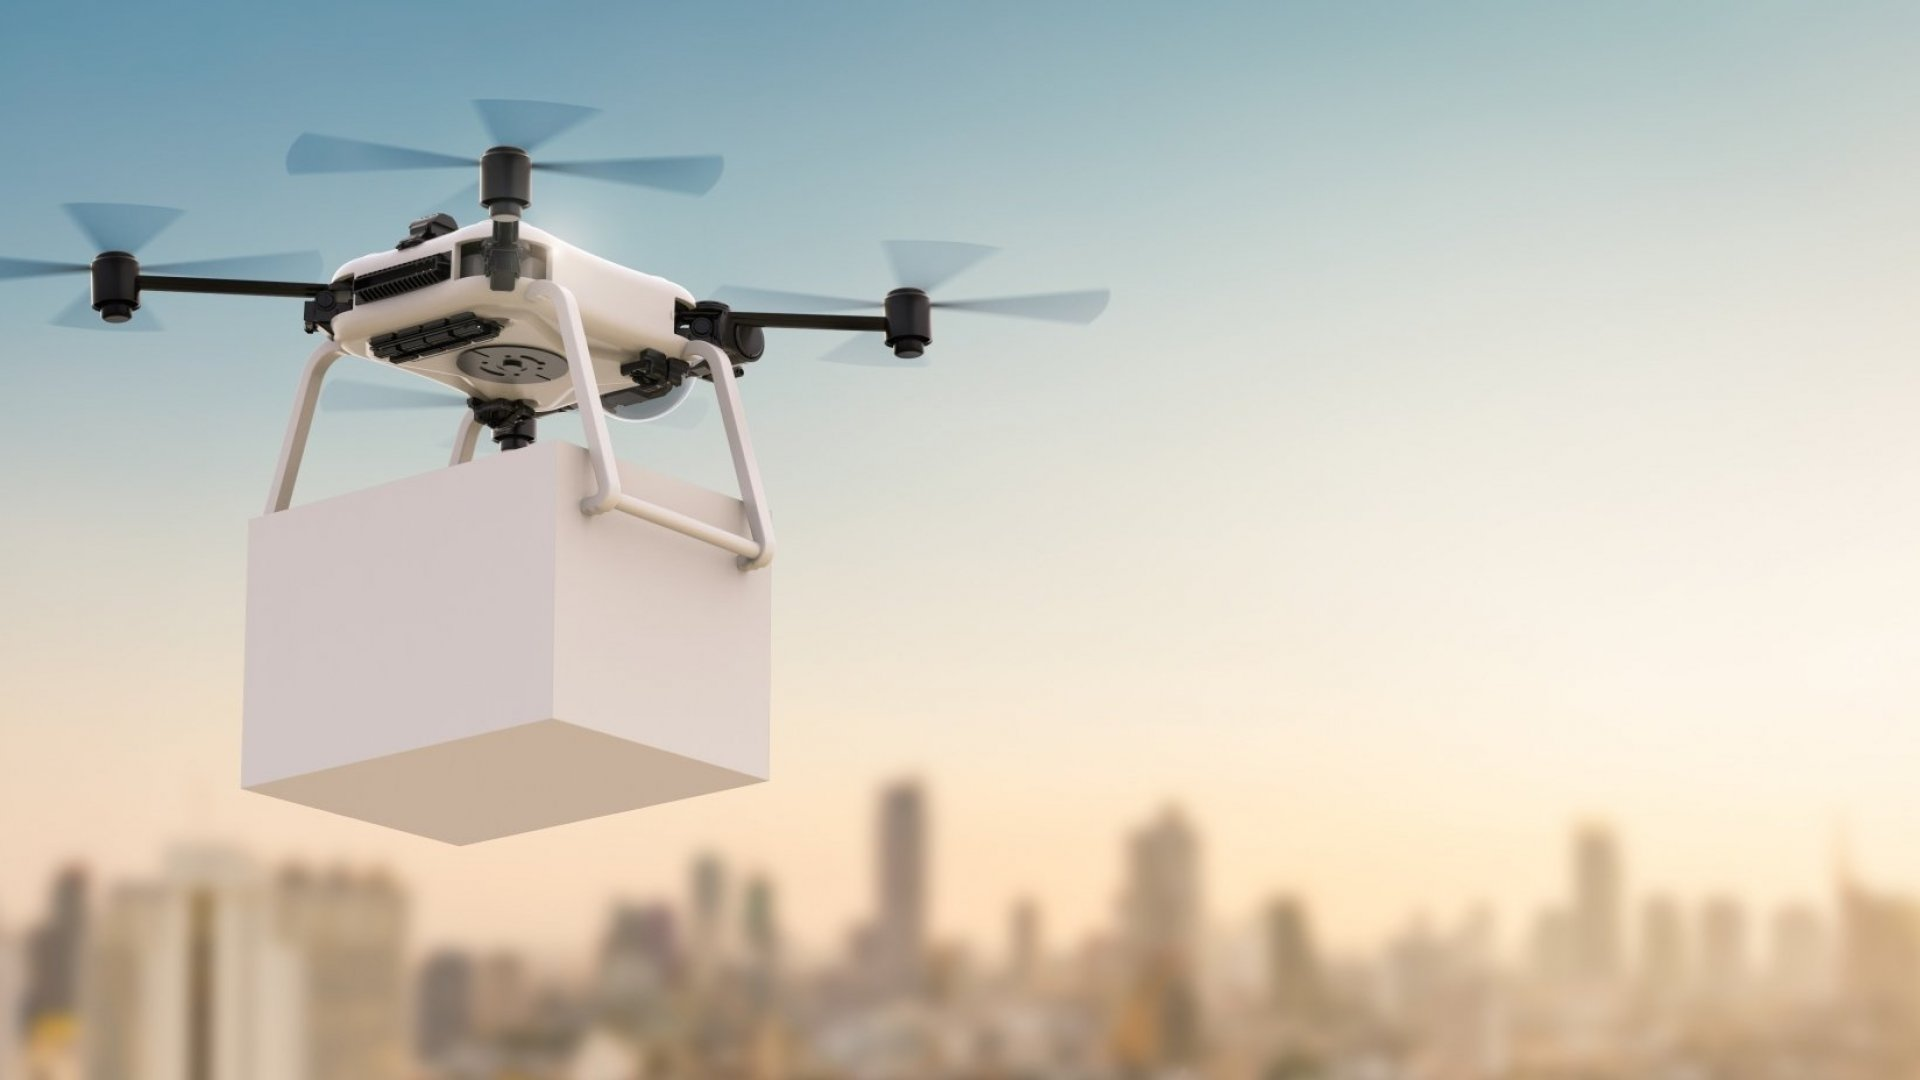 Amazon's Delivery Drones Could Scan Your House to Sell You More Products